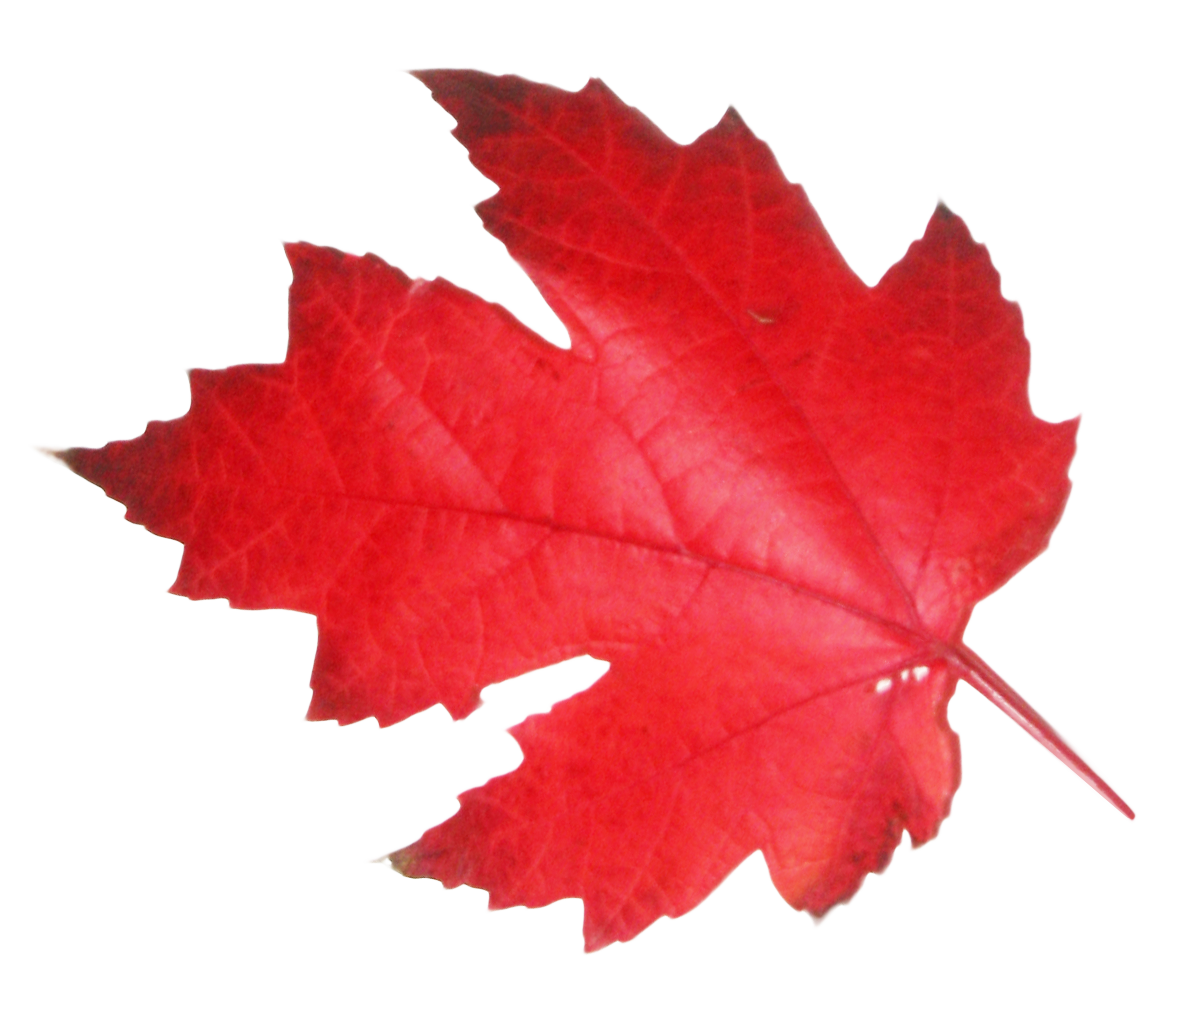 Maple Leaf PNG Transparent Image.